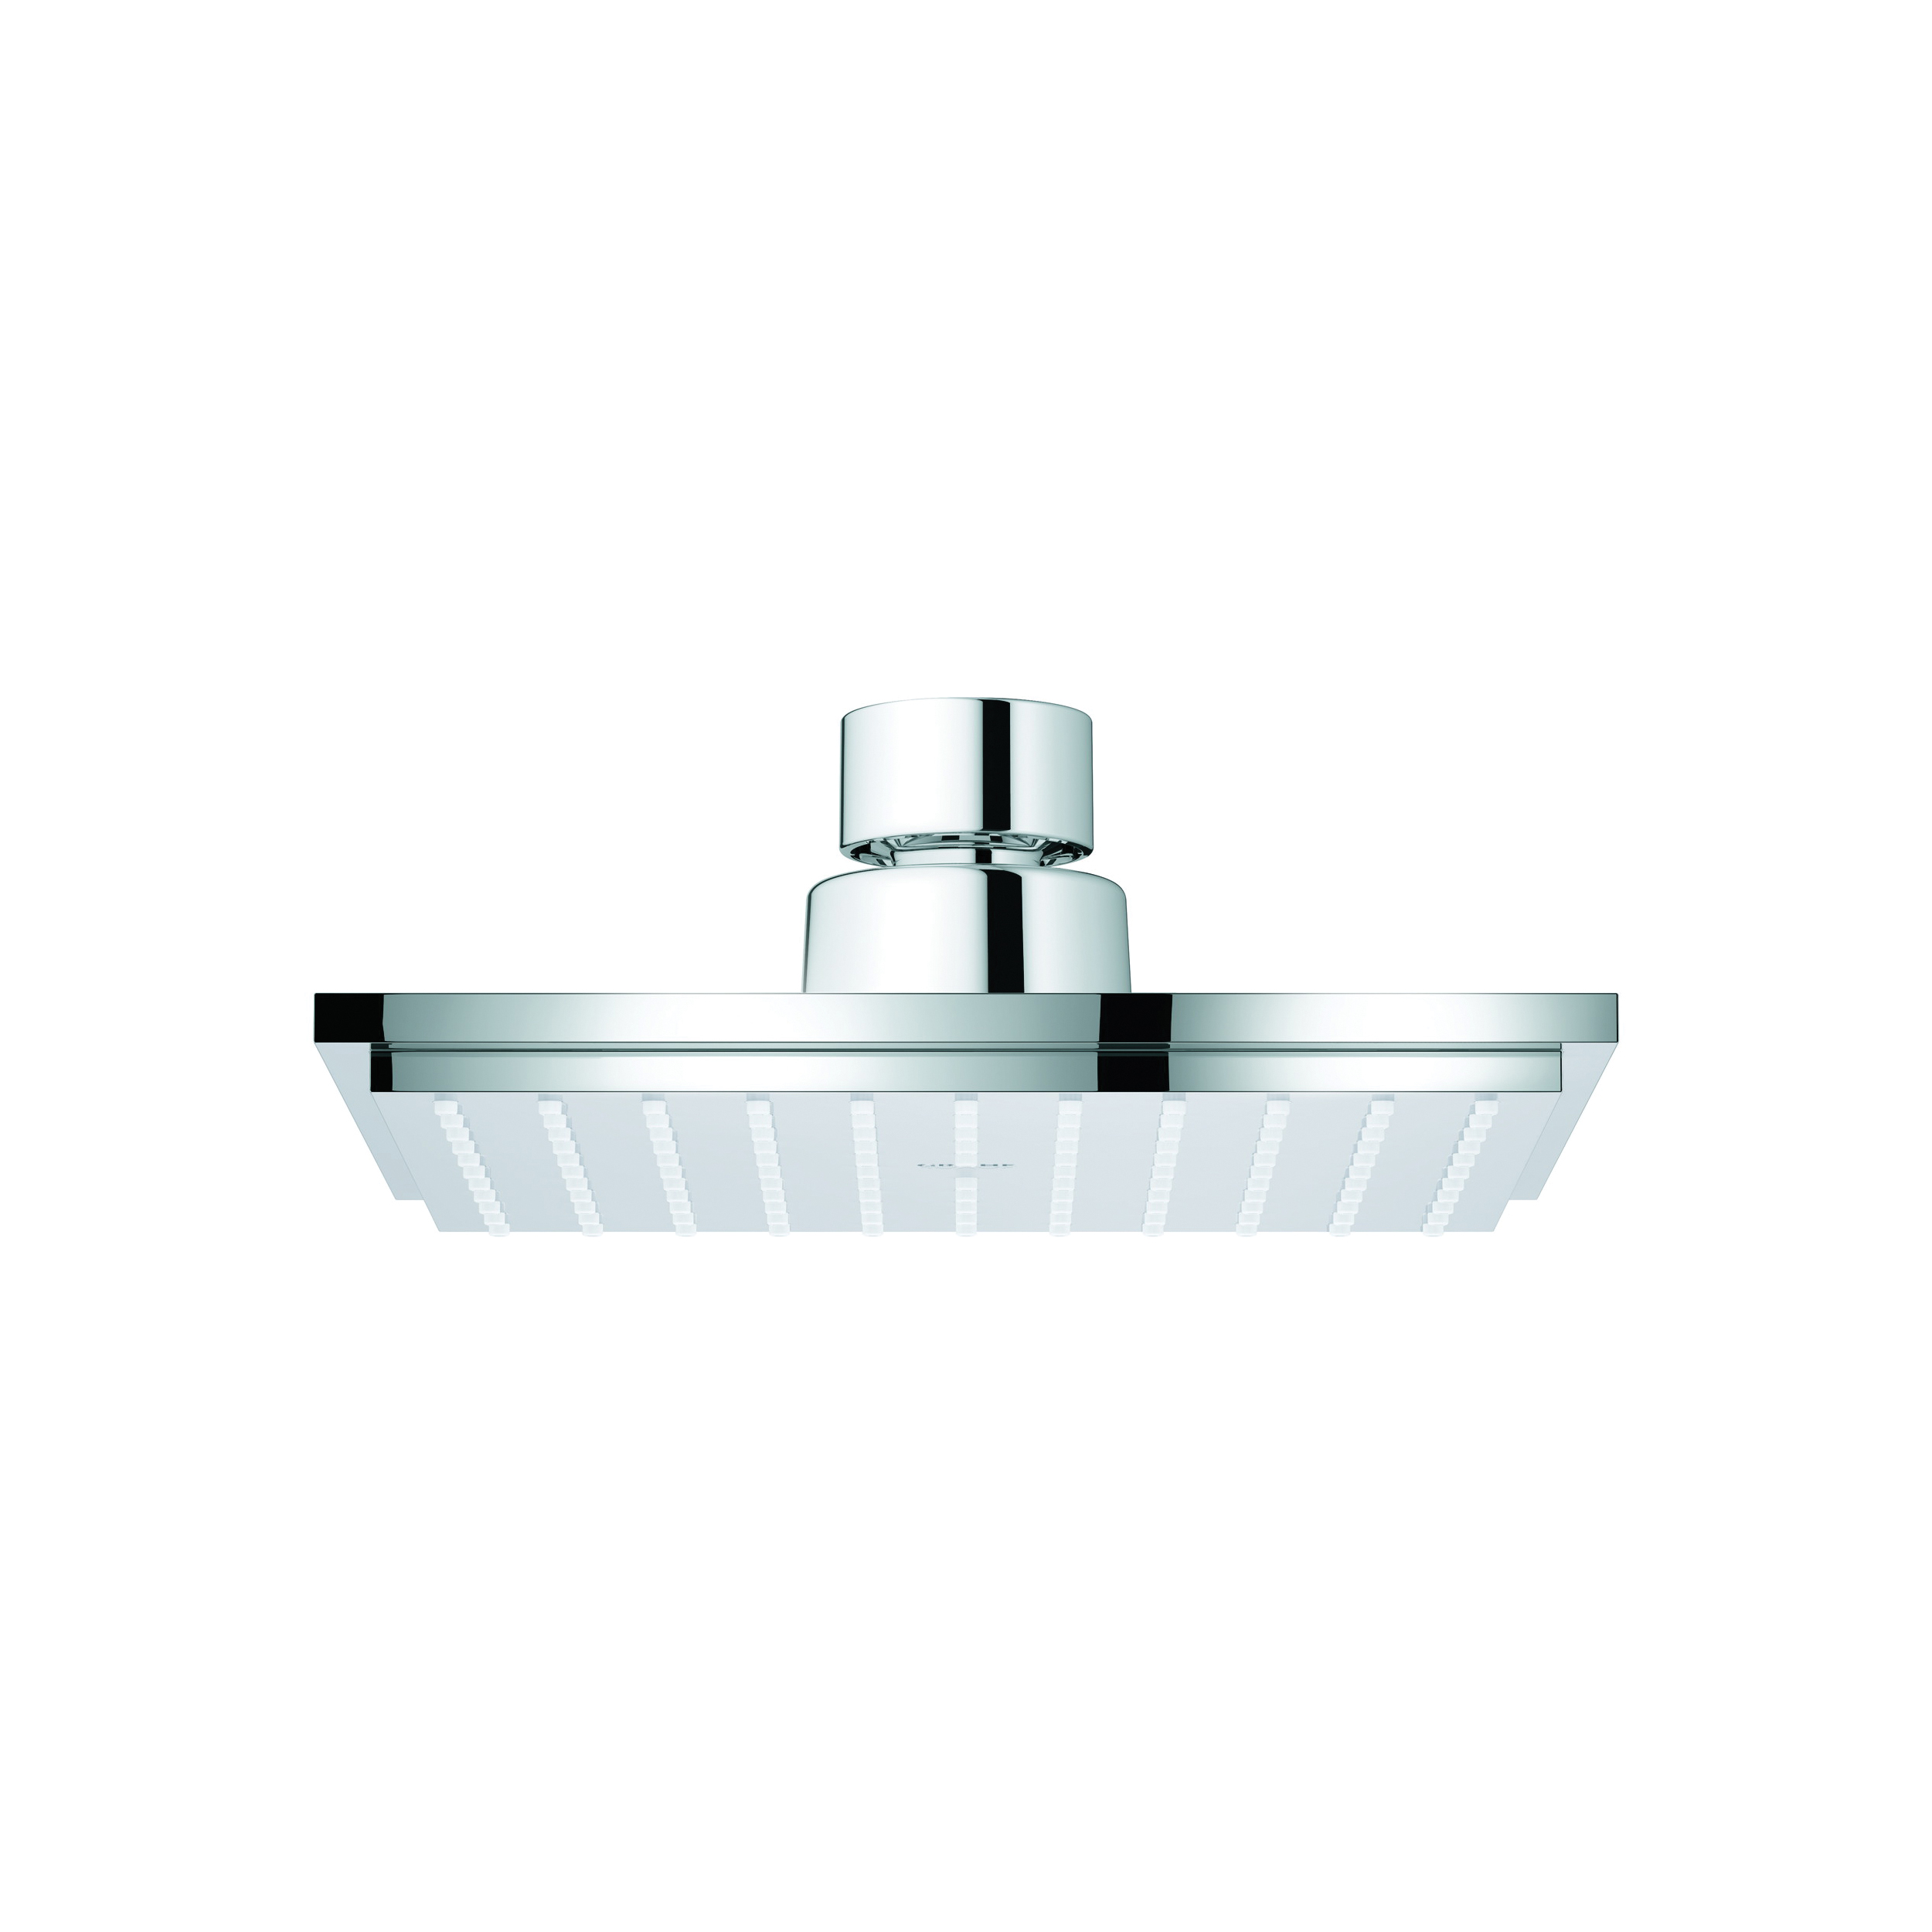 GROHE 27705000 Euphoria Cube 150 Shower Head, 2.4 gpm, 1 Spray, Import